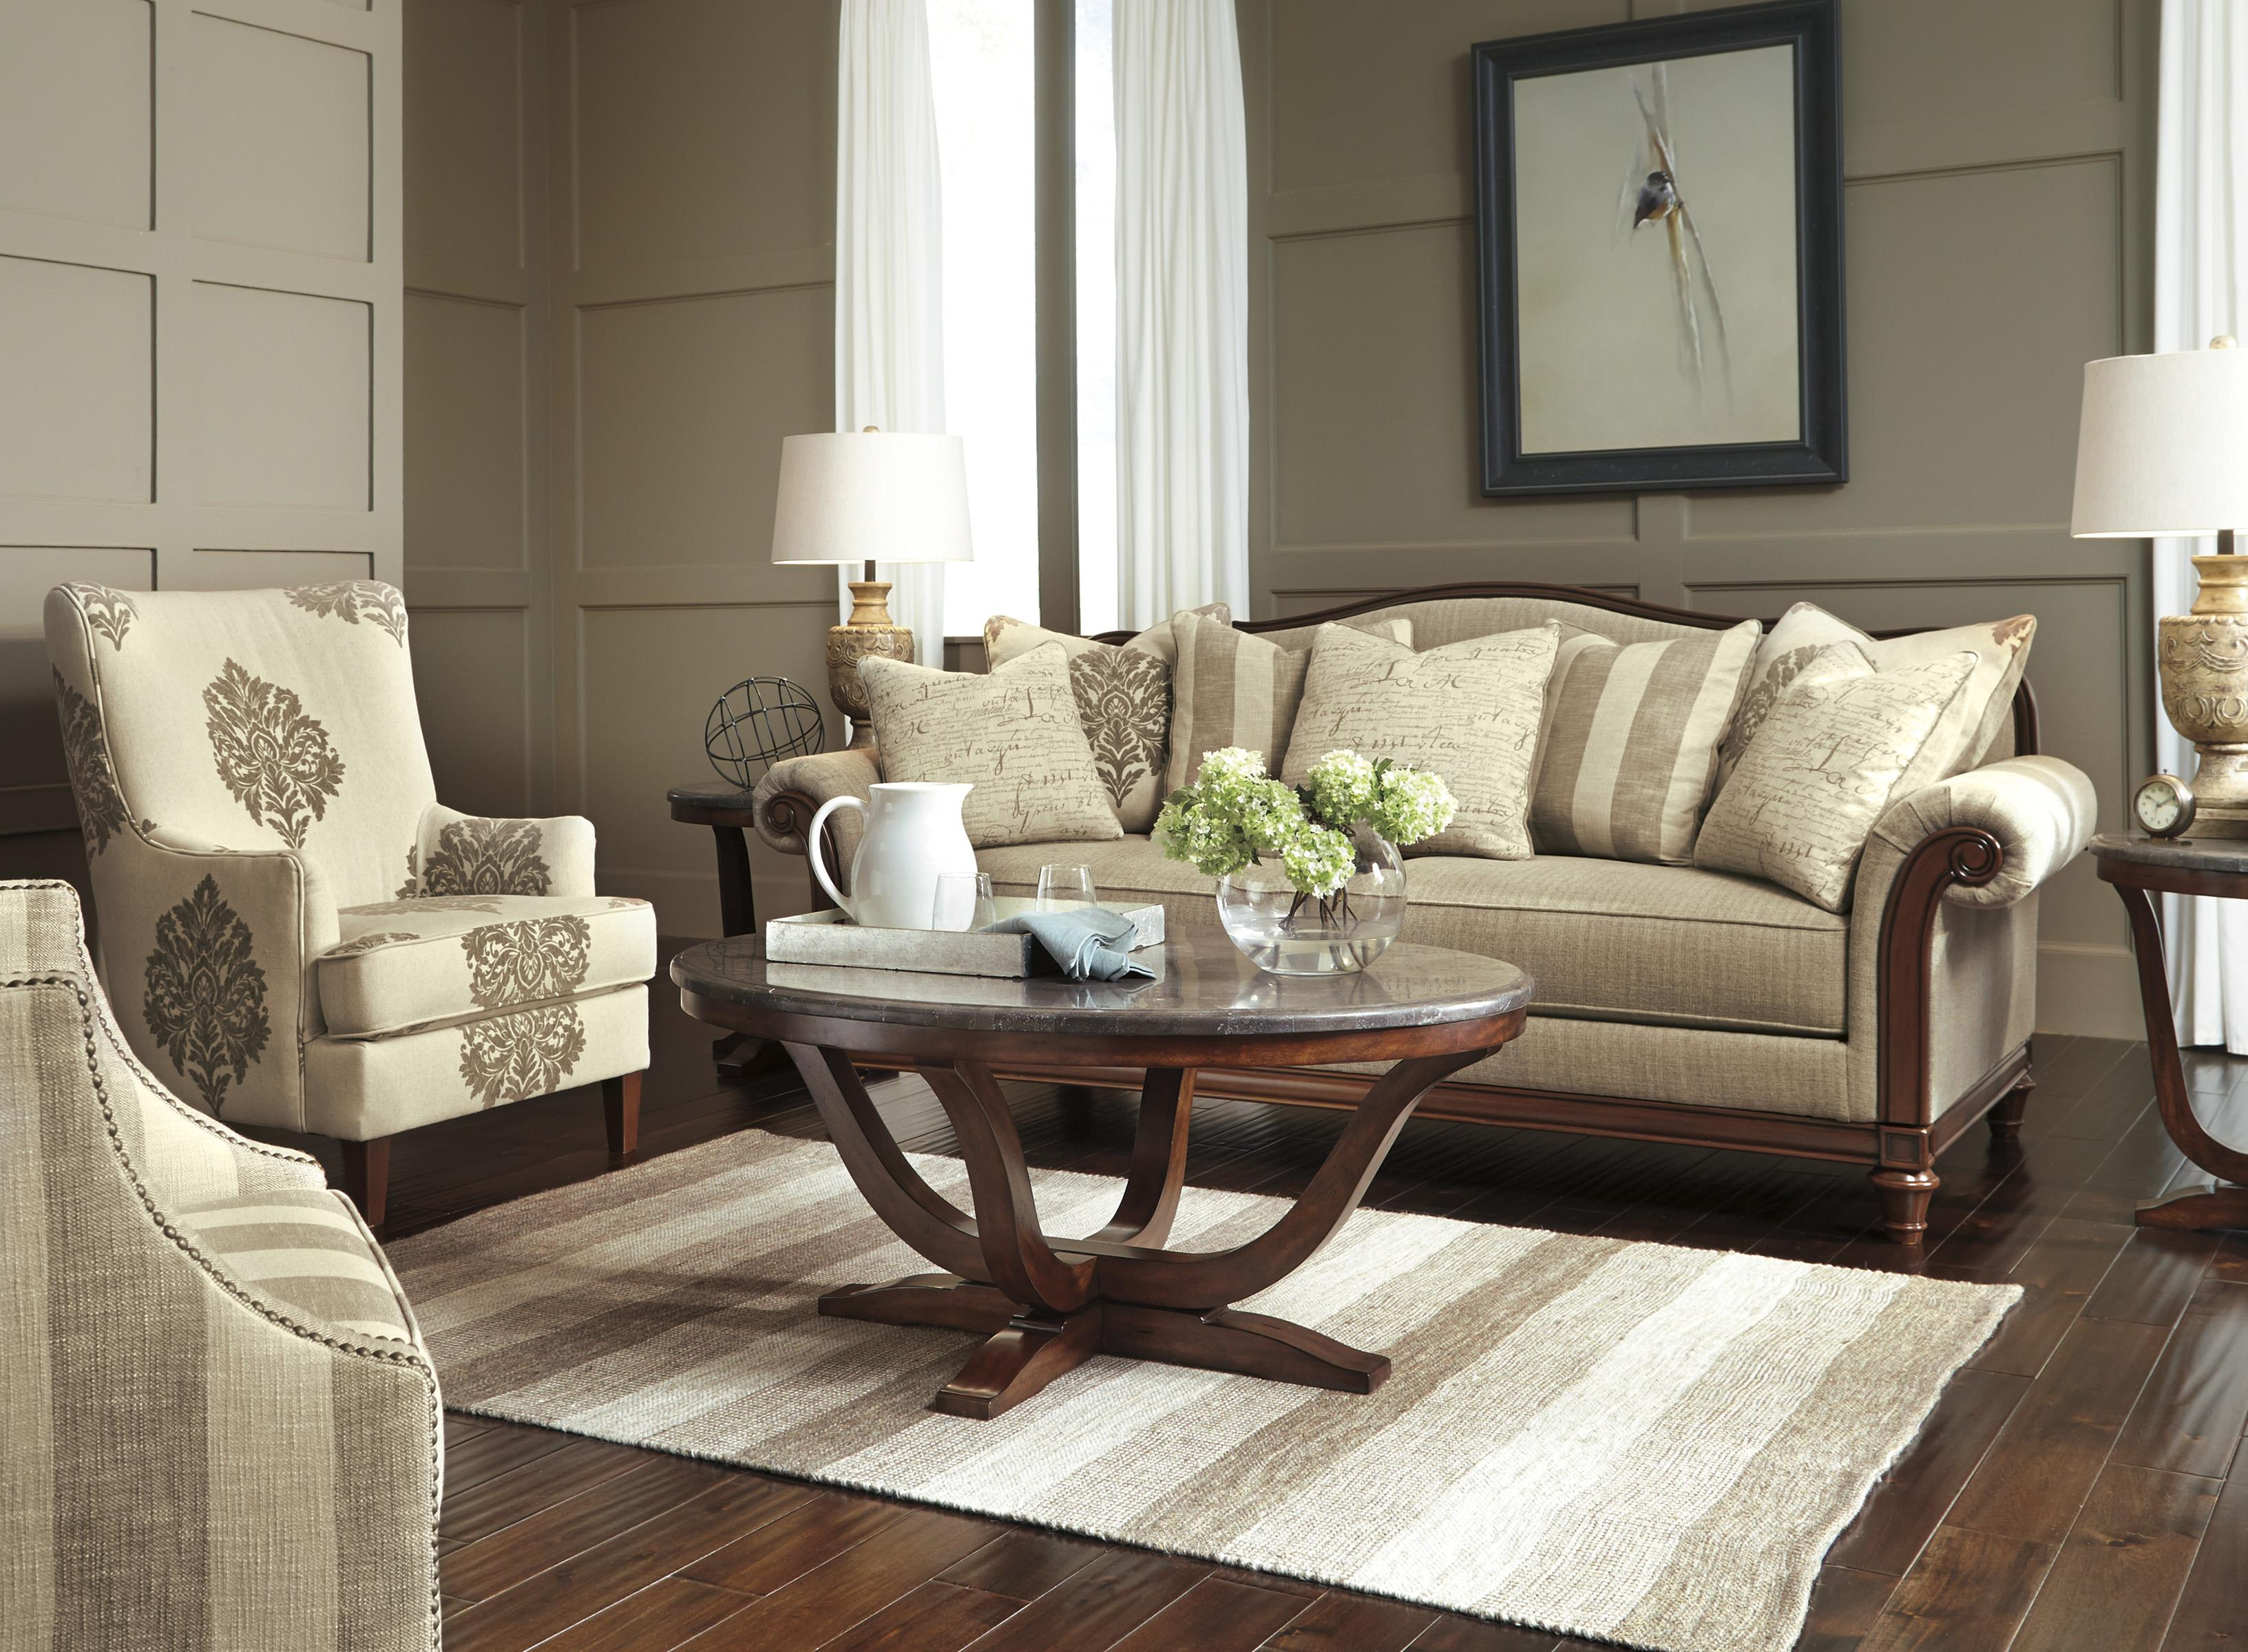 Signature Design by Ashley Berwyn View Stationary Living Room Group - Item Number: 89803 Living Room Group 2